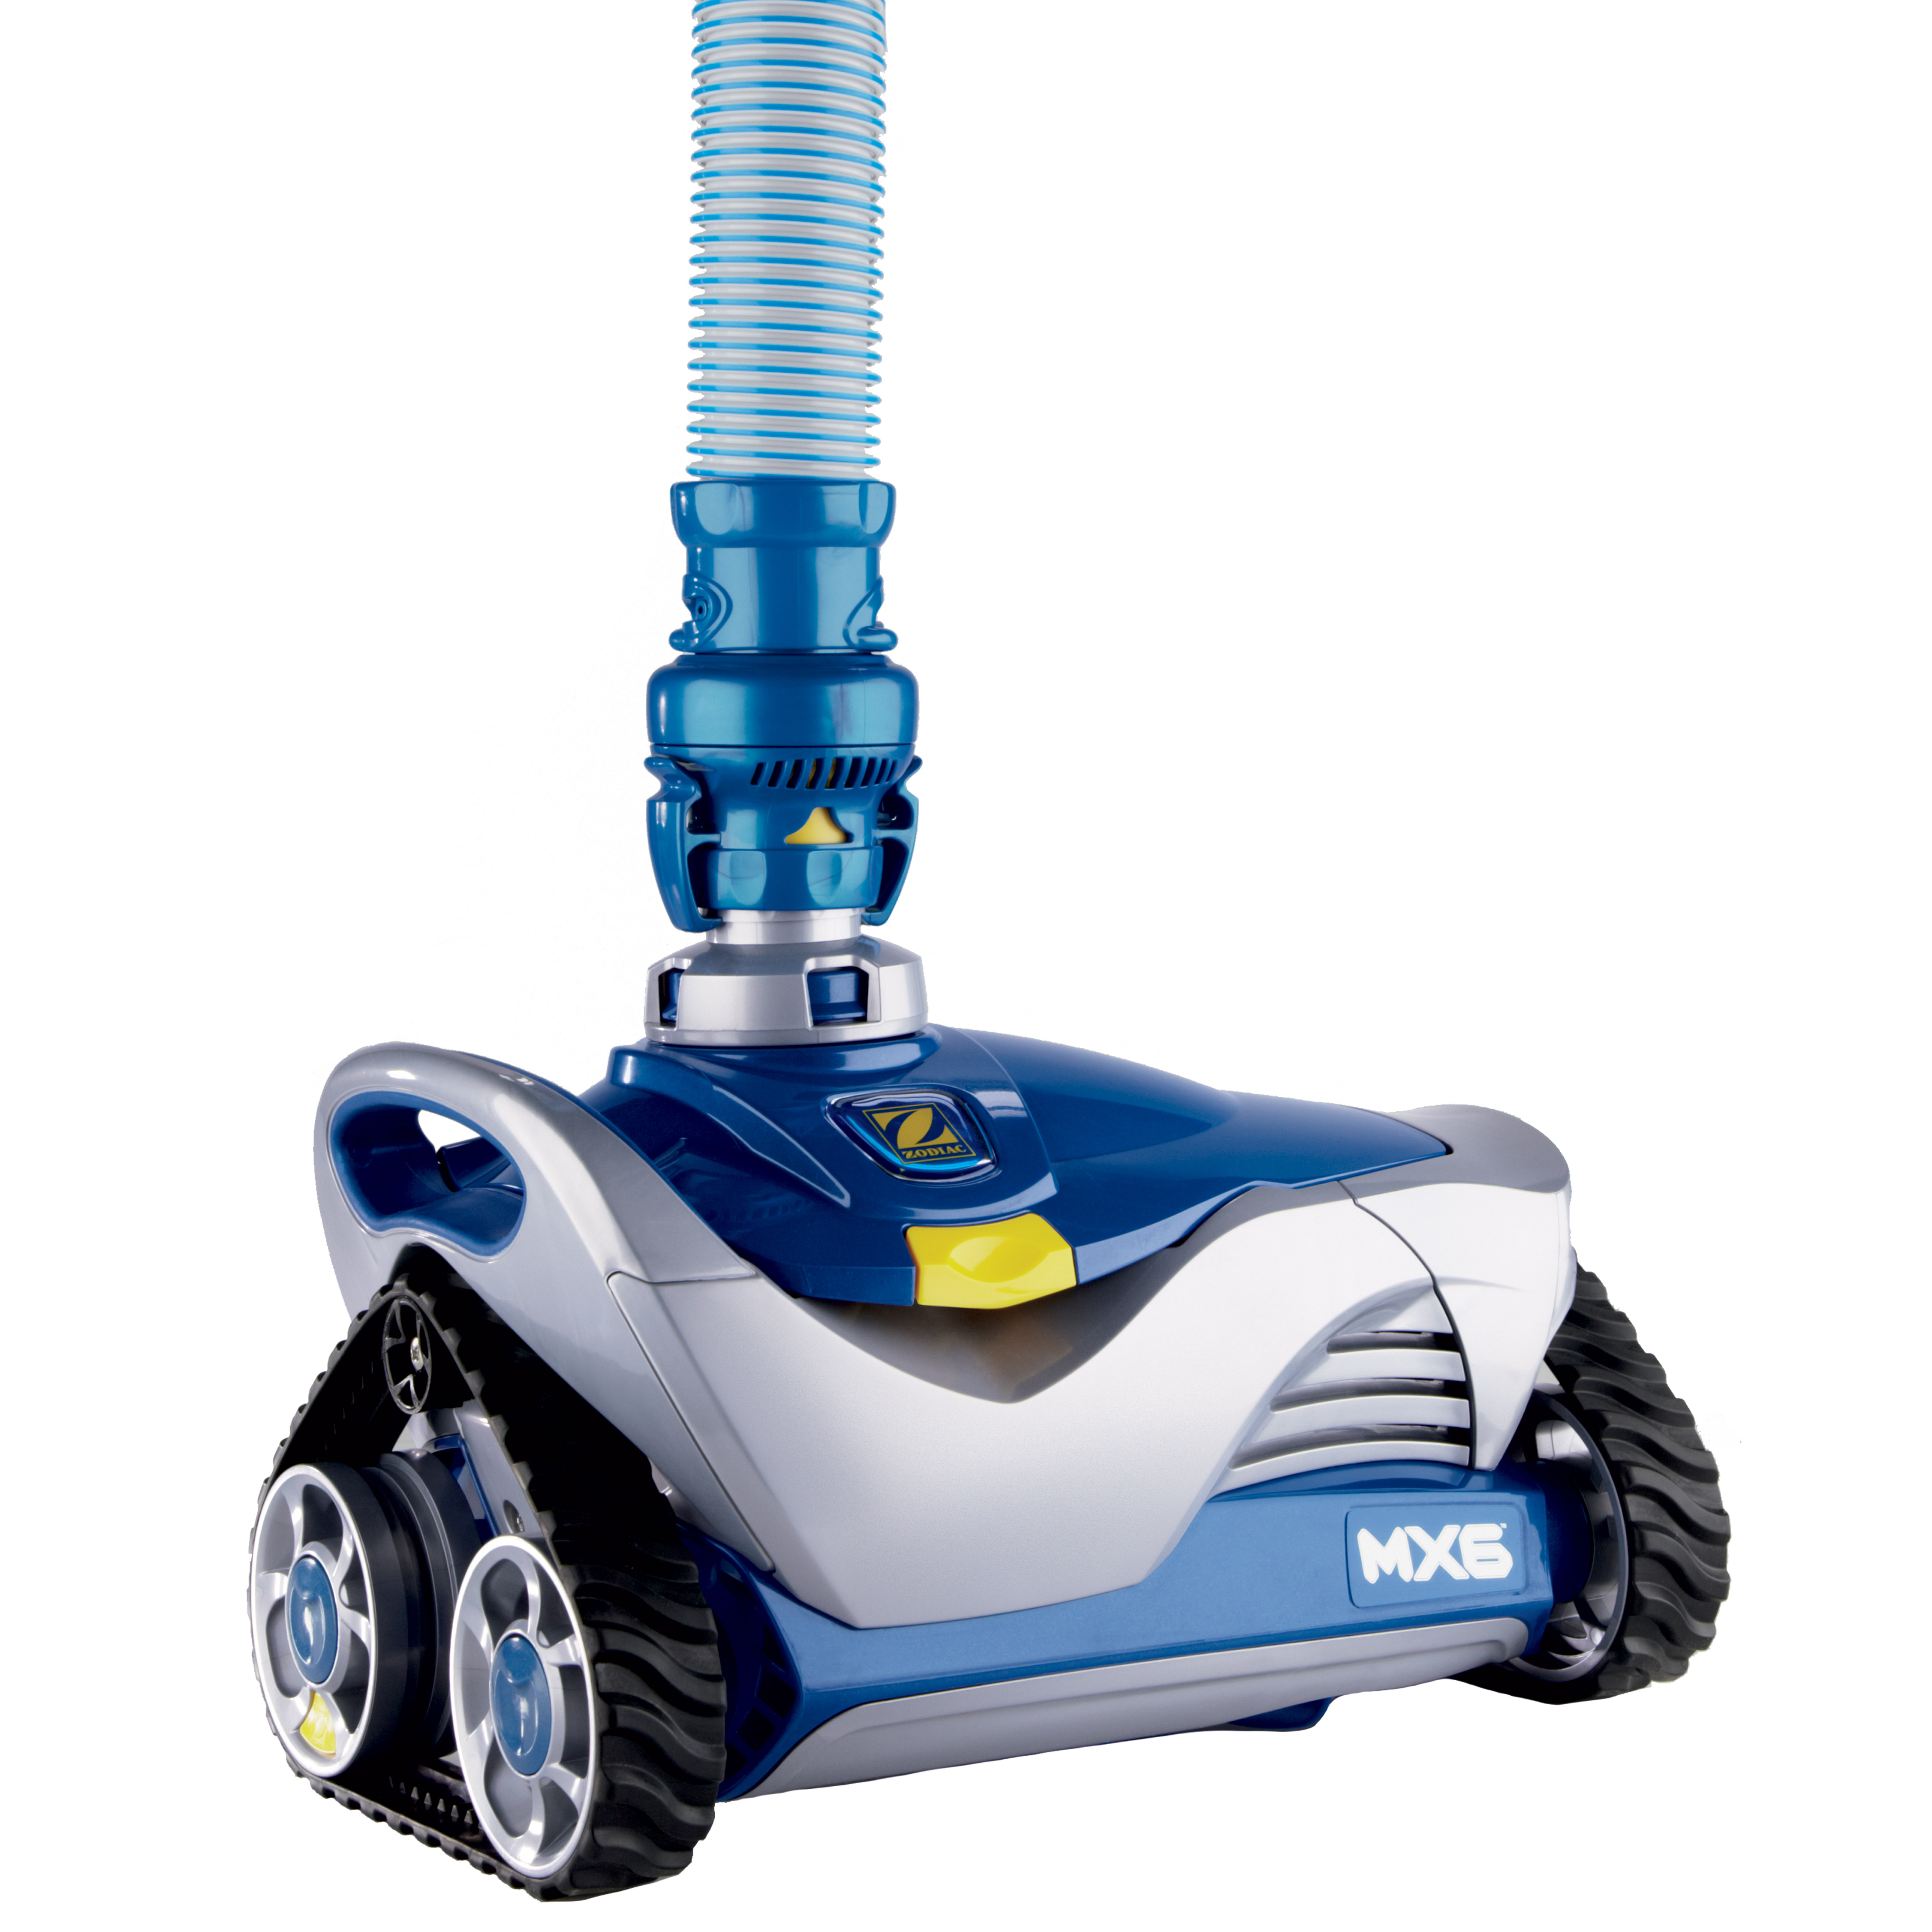 Zodiac MX6 Automatic In Ground Pool Cleaner